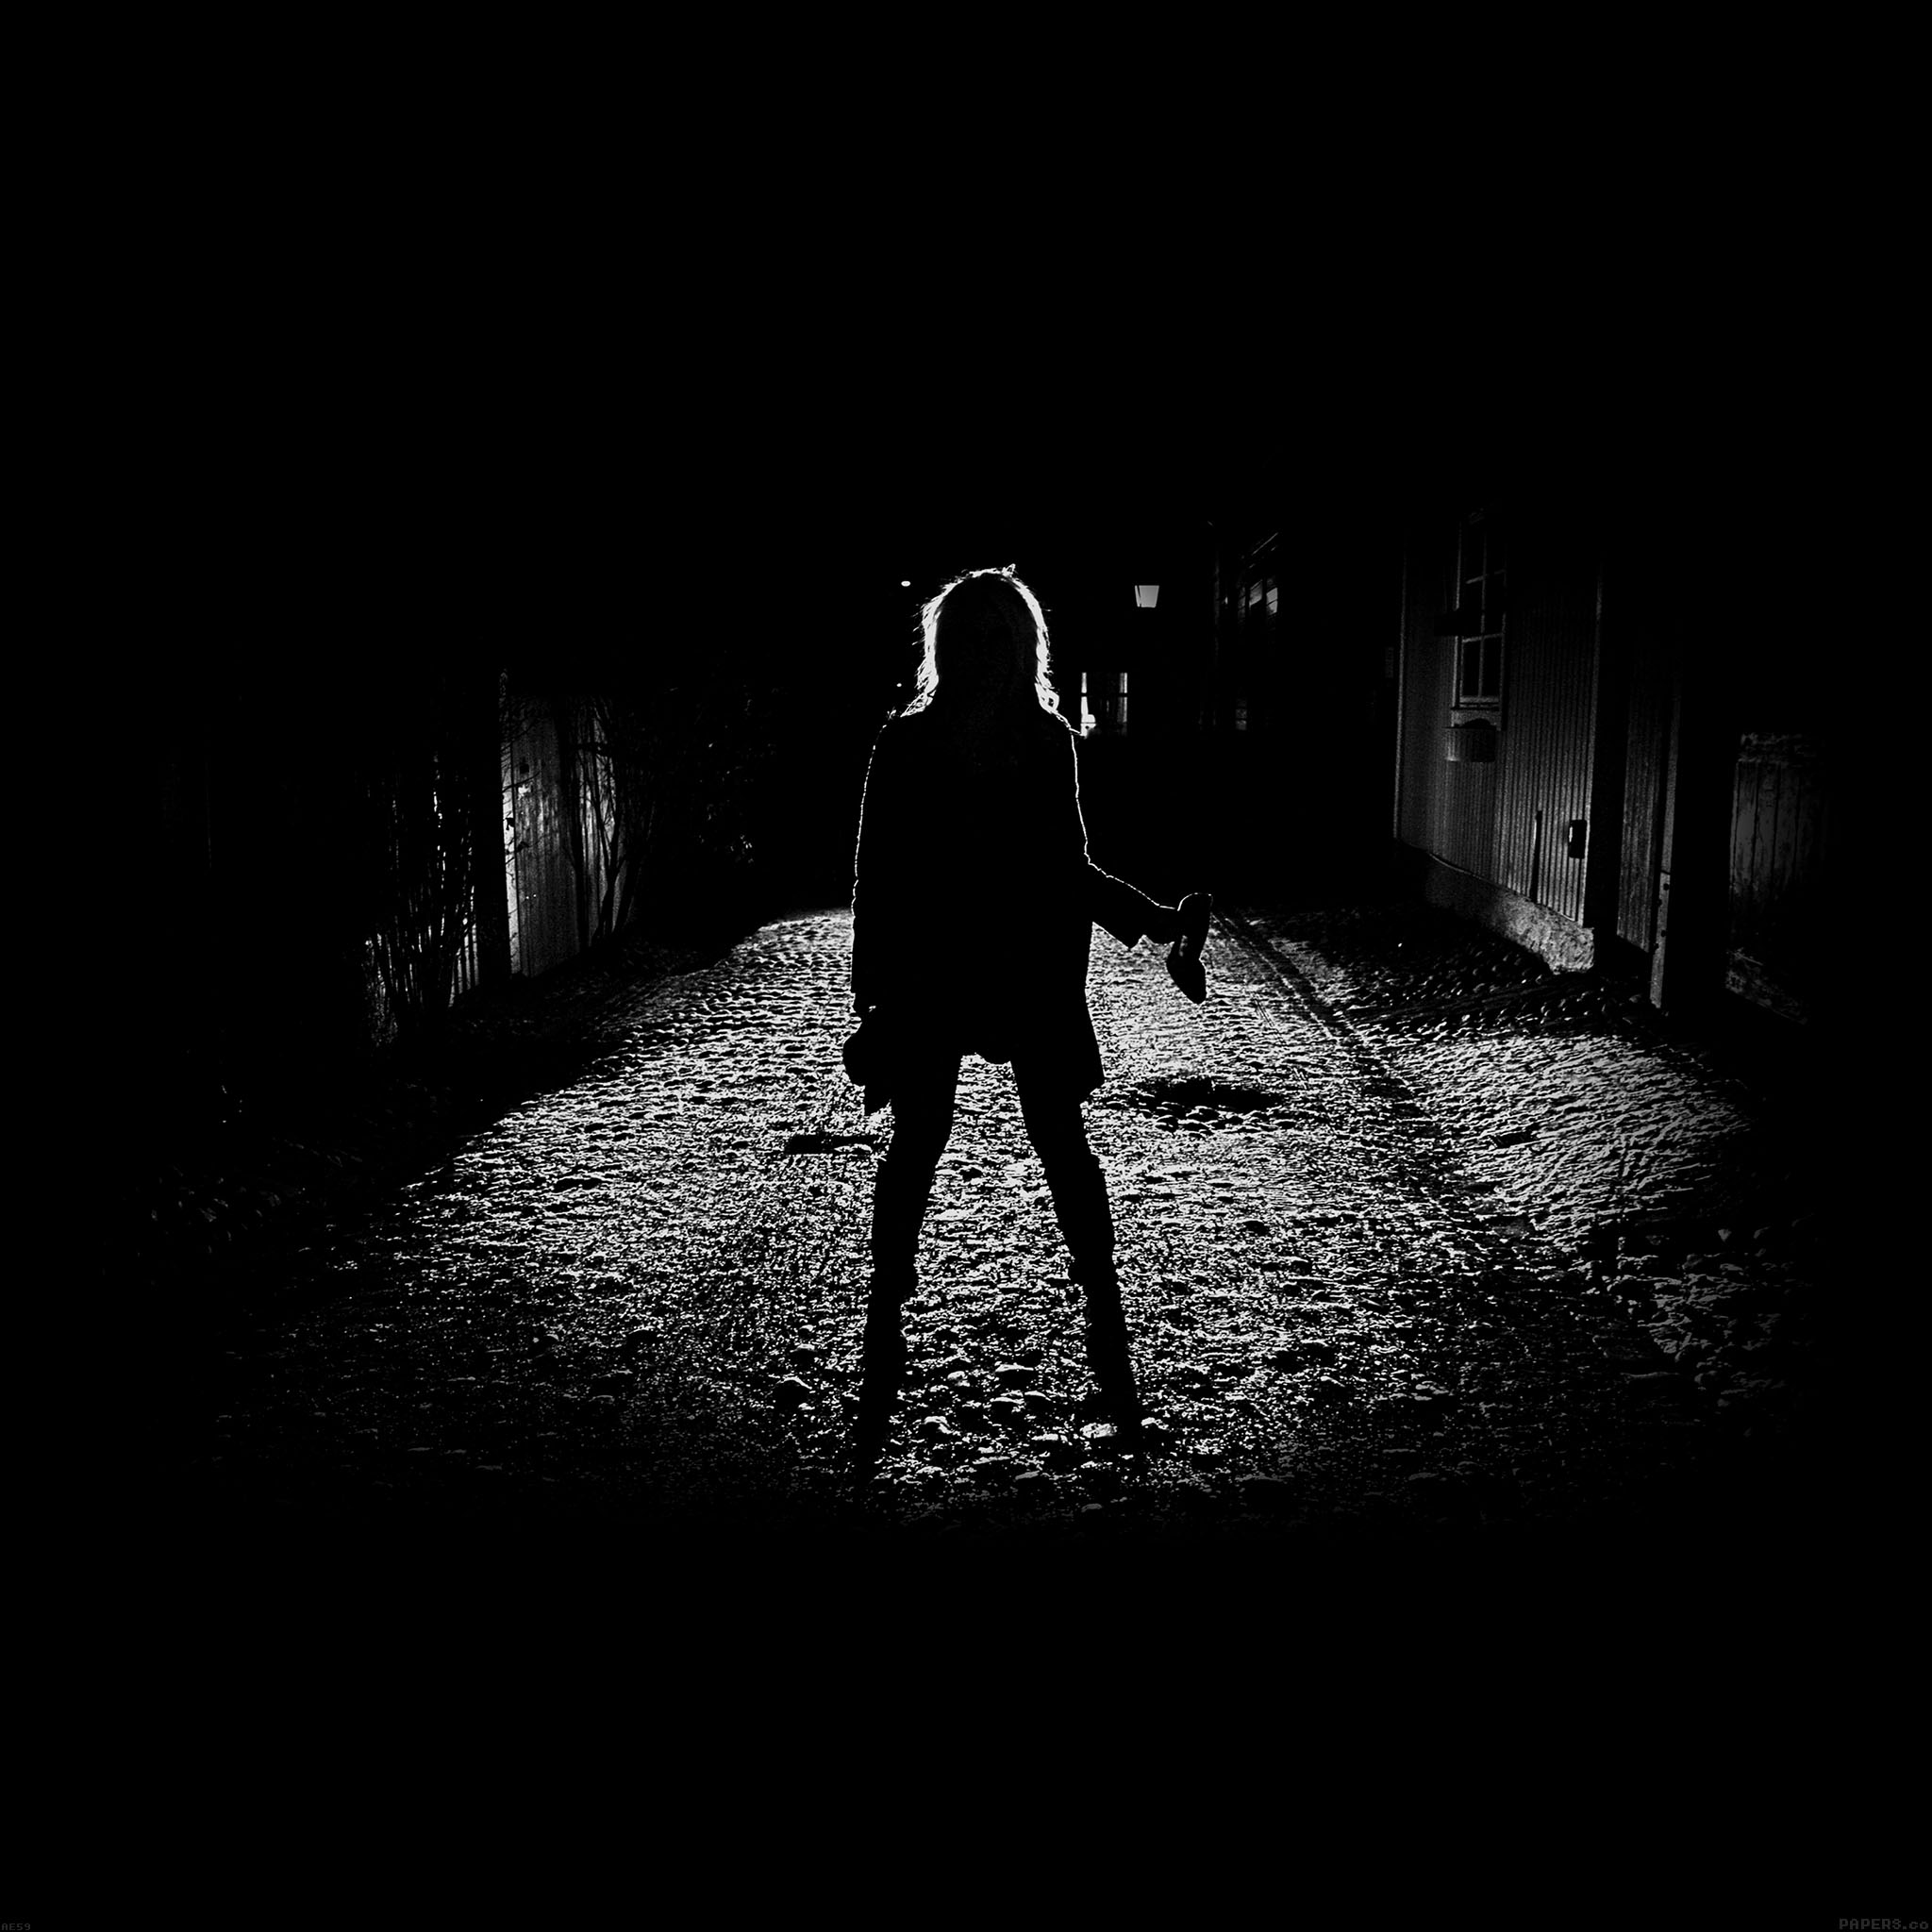 ae59-girl-silhouette-dark-street-scary-maybe - Papers.co